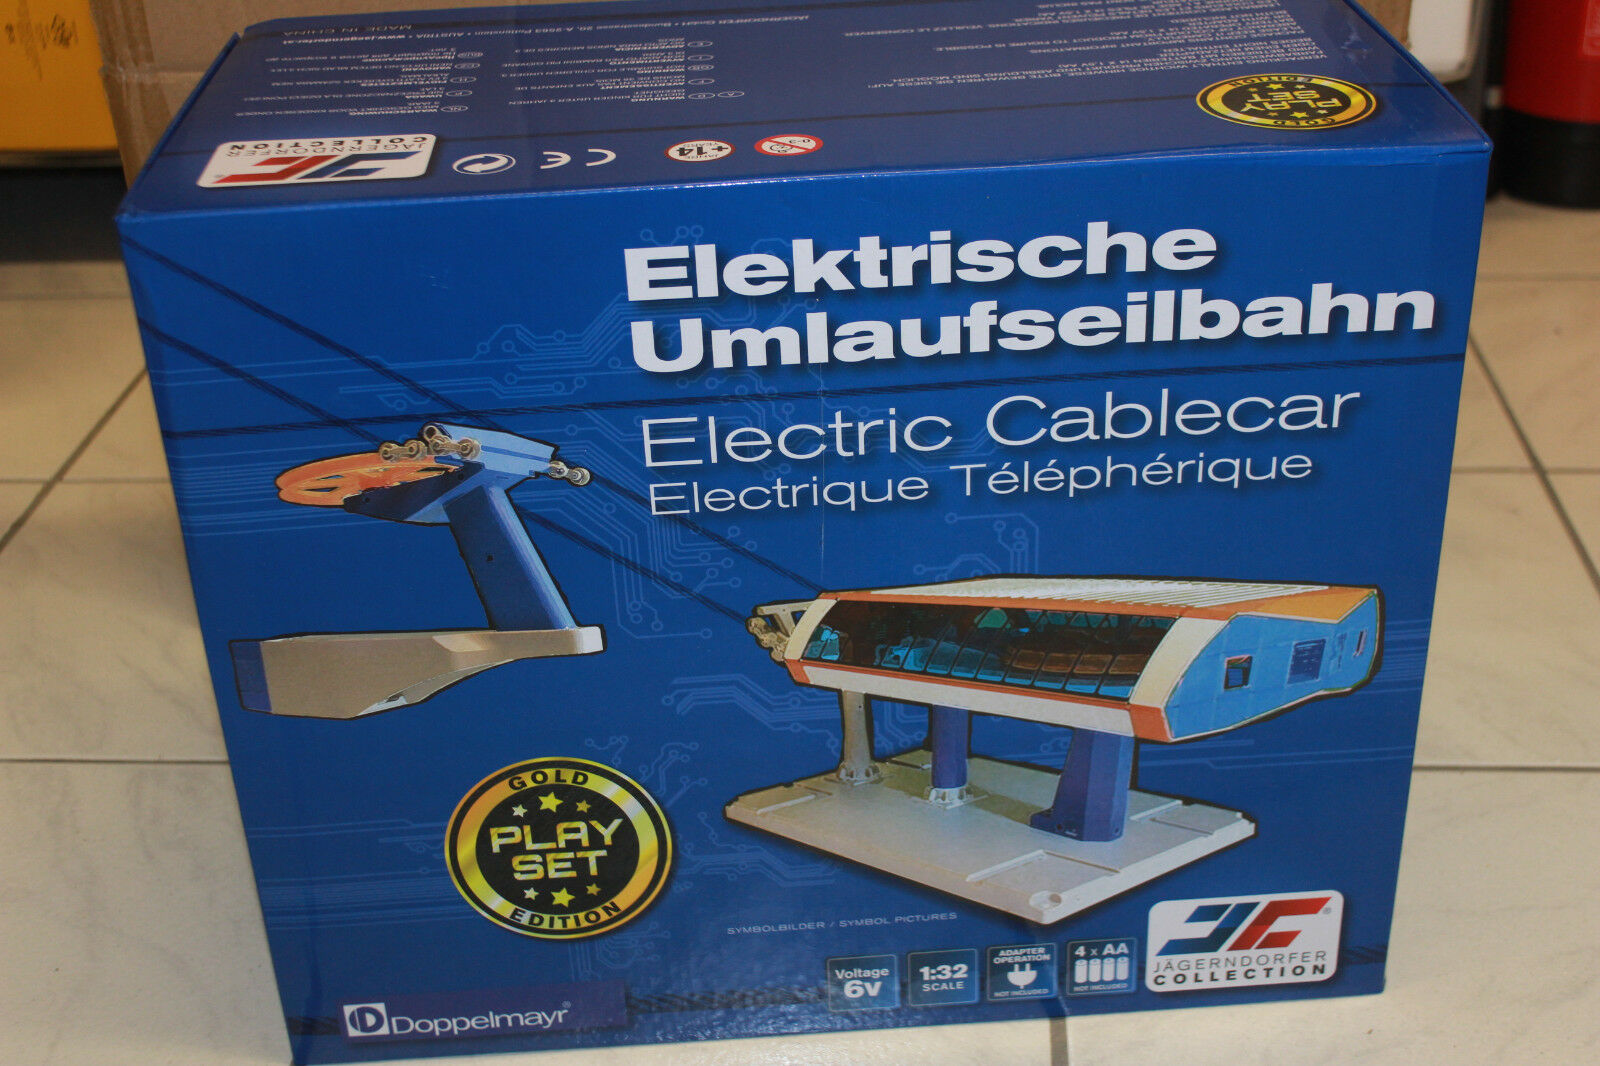 Jägerndorfer Jc 84393 Unig-V Cable Car 1 3 2 Orbit Electric New in Original Box